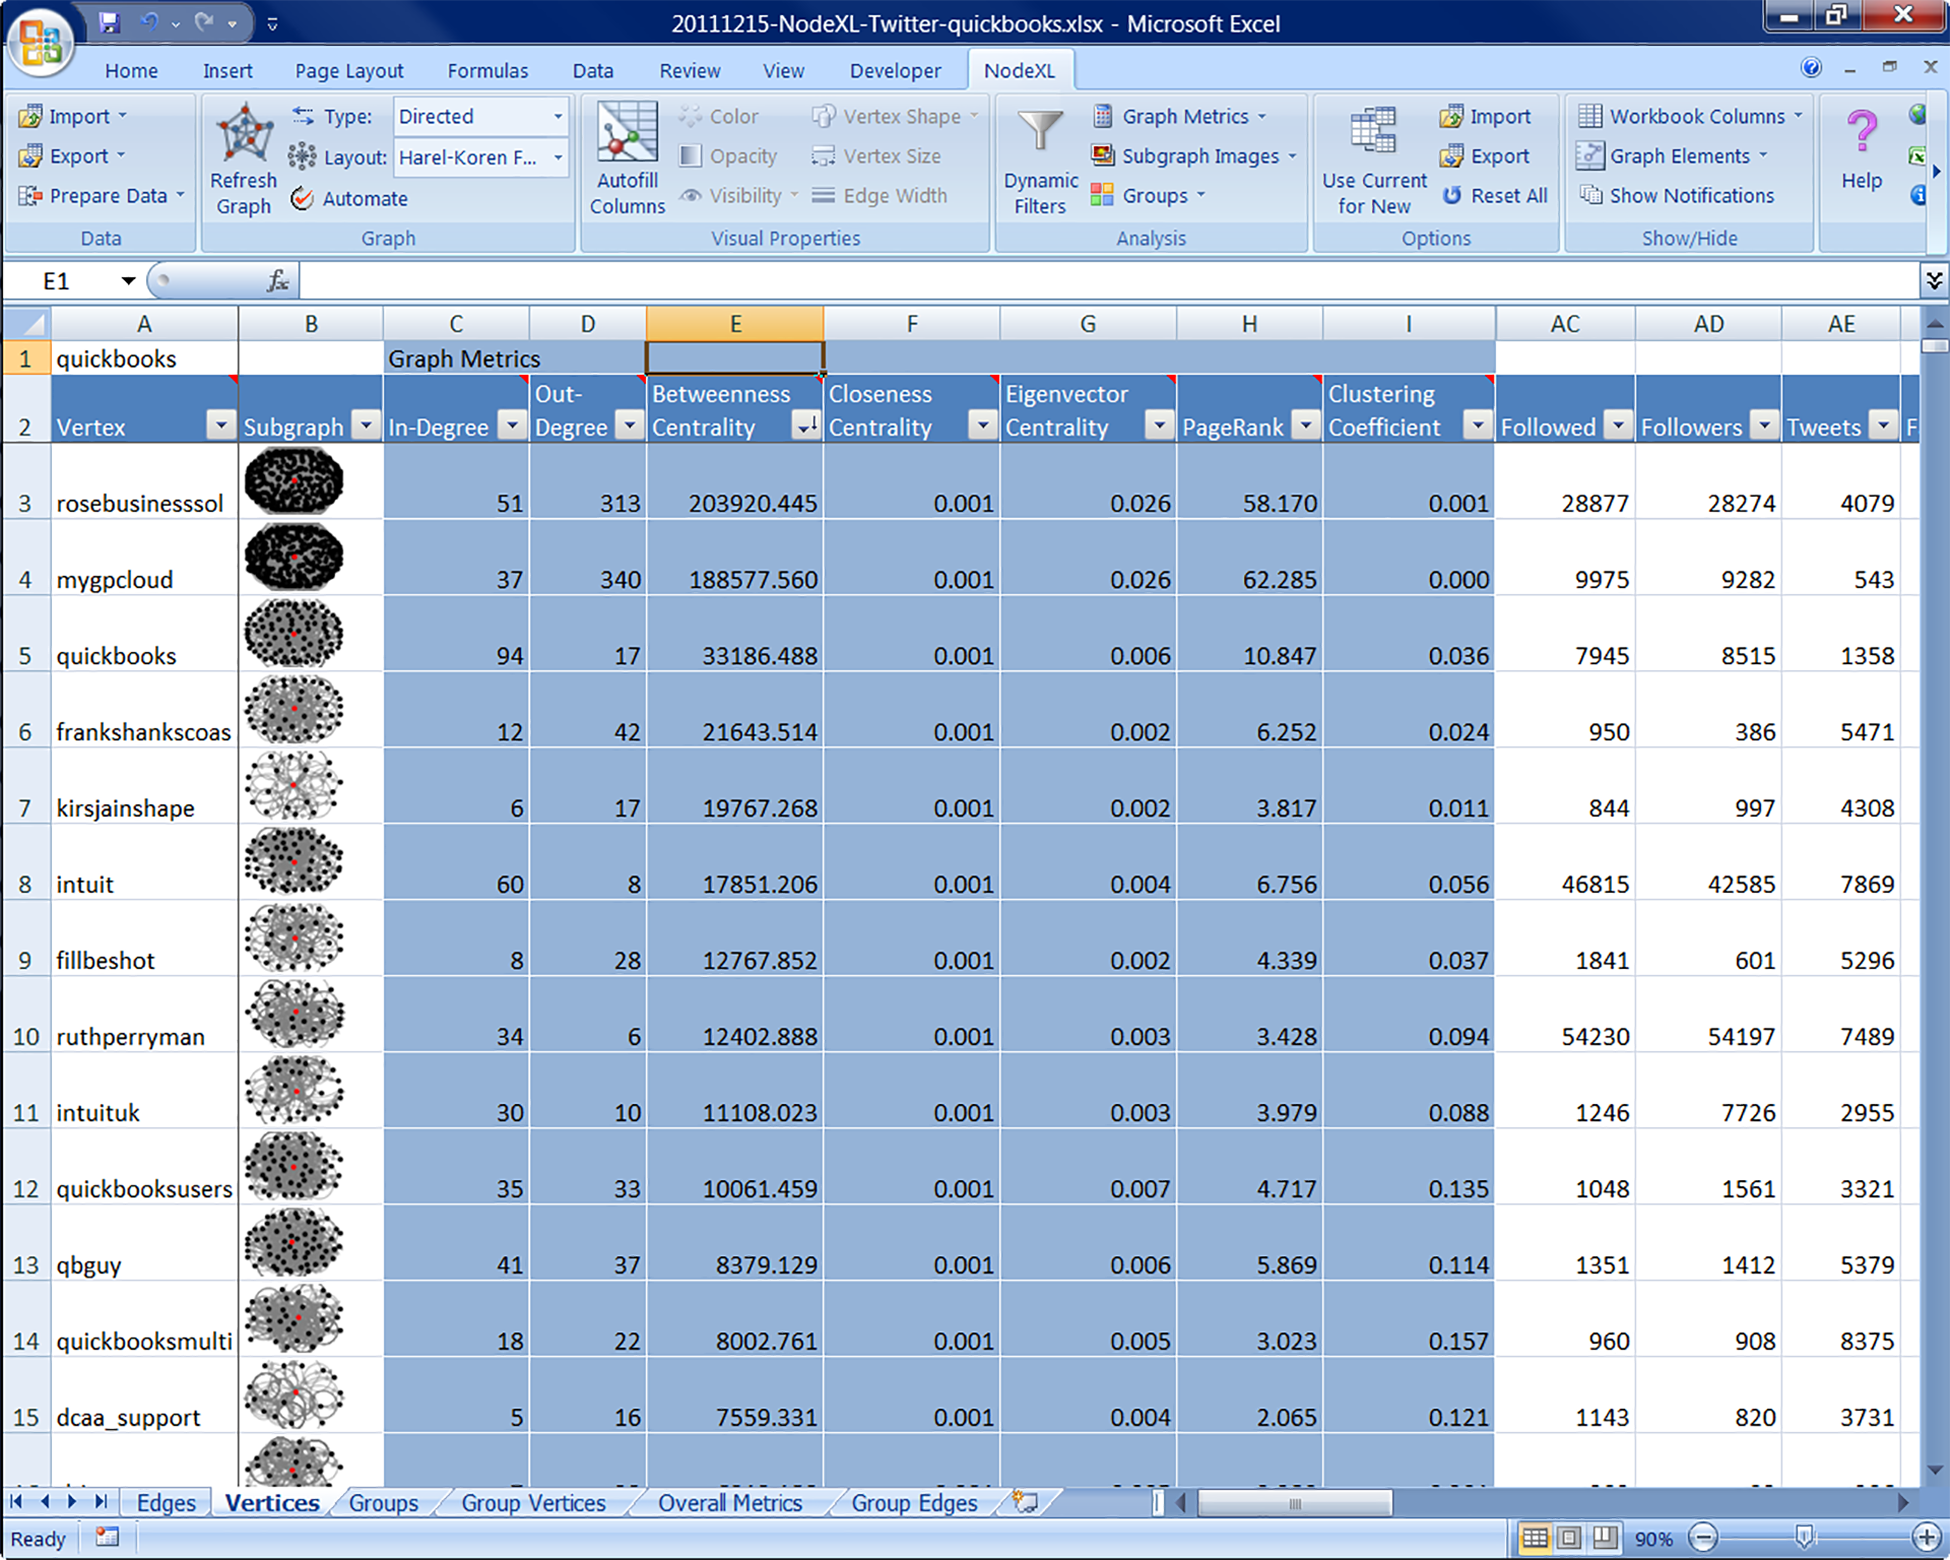 Photograph shows a screen shot of a quick books page, with columns and rows of data.